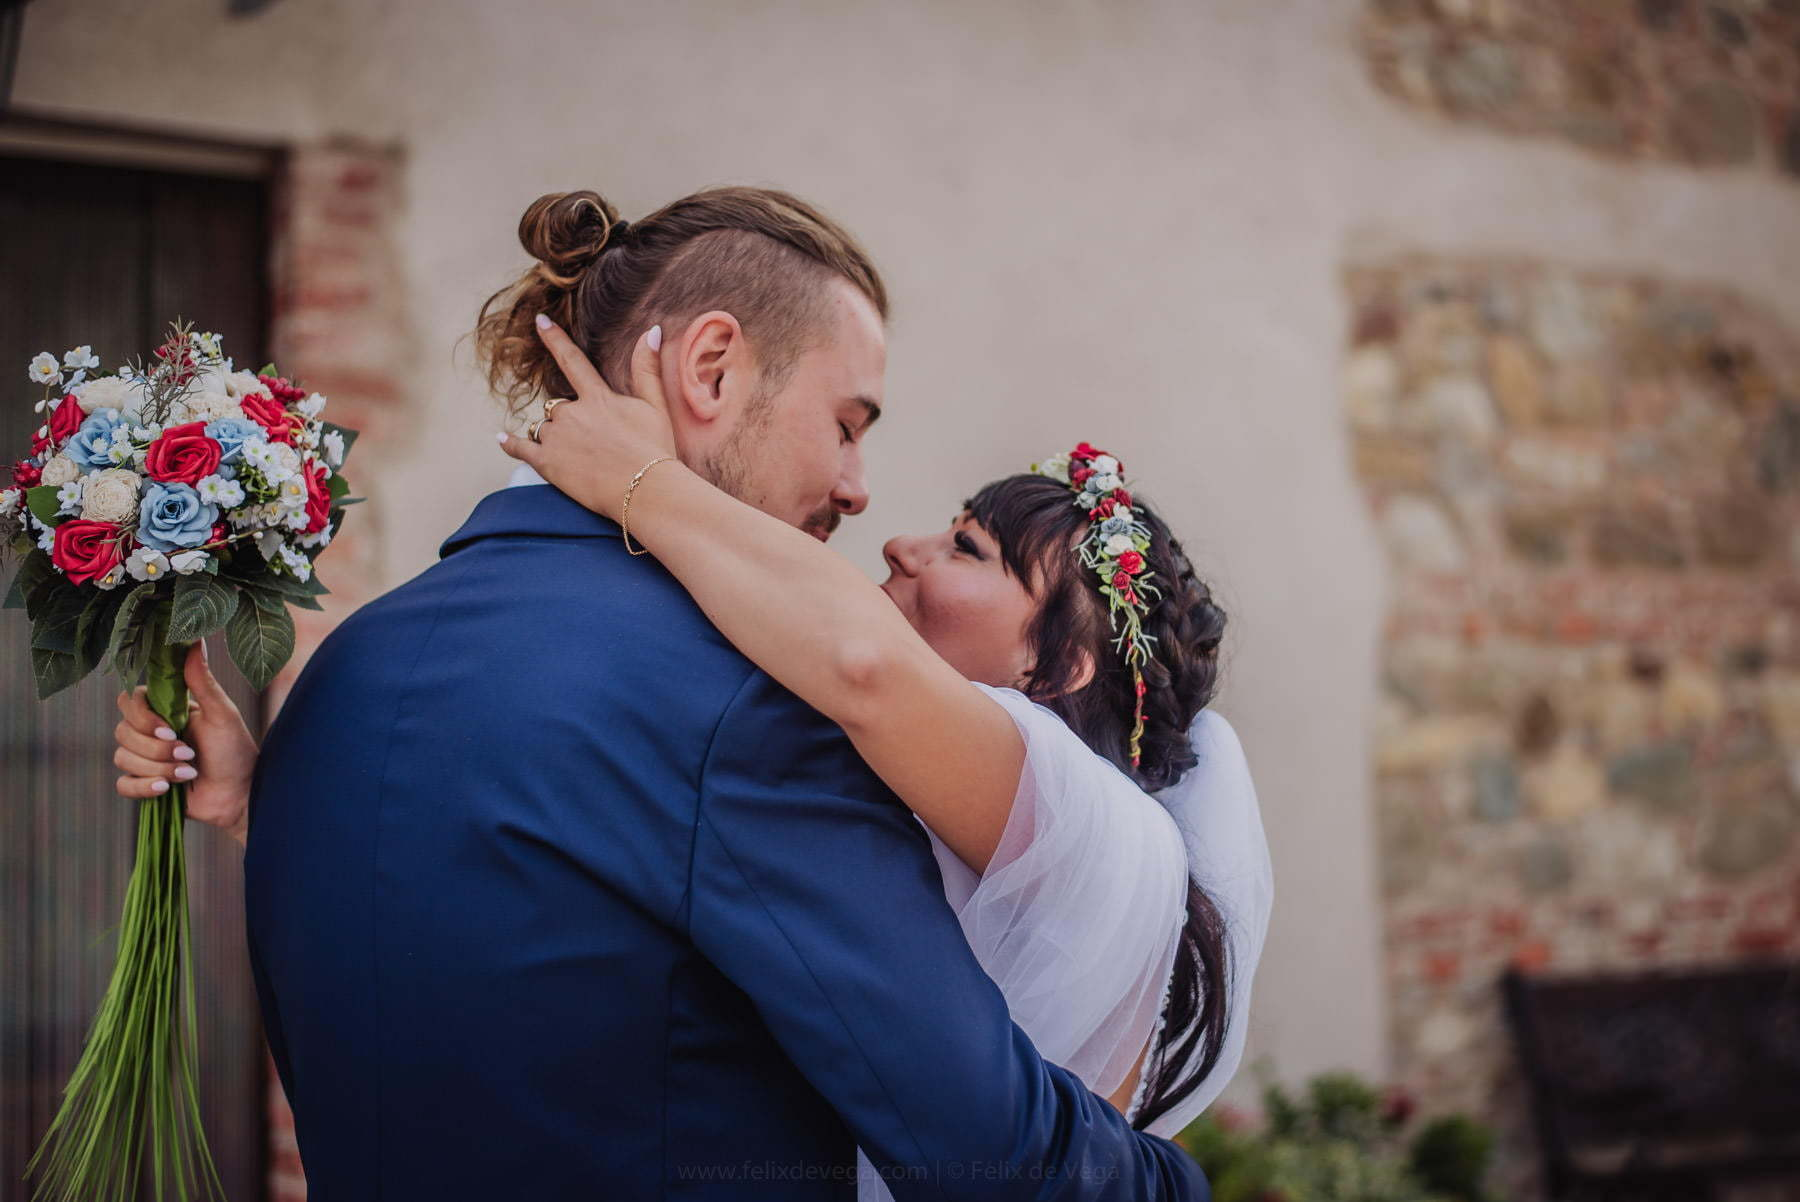 first kiss of bride and groom before wedding in Italy